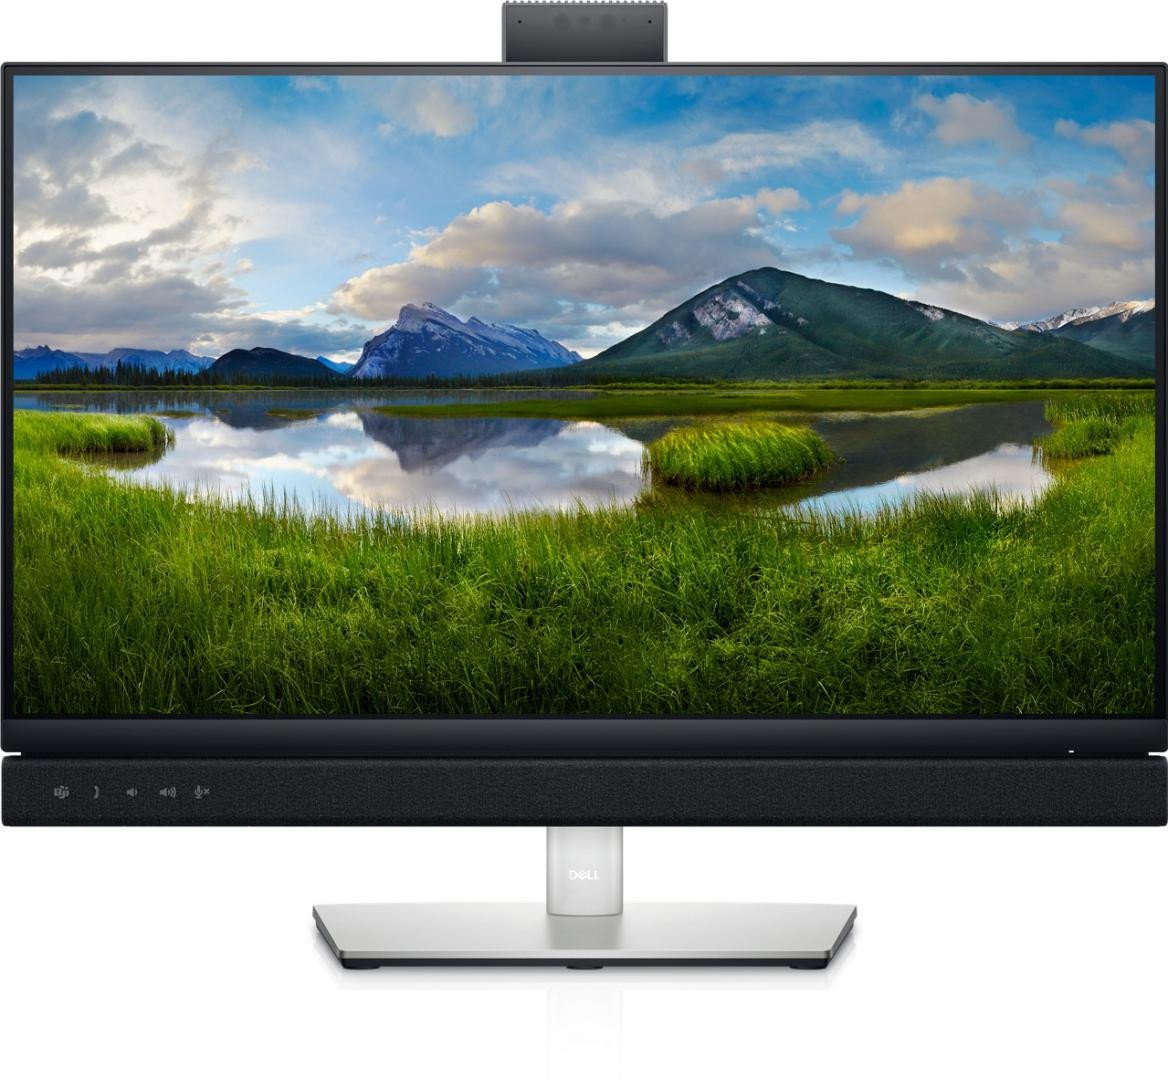 Dell  Video Conferencing Monitor 23.8'' C2422HE, 60.47cm, LED, IPS, FHD, 1920 x 1080 at 60Hz, 16:9 - imaginea 1